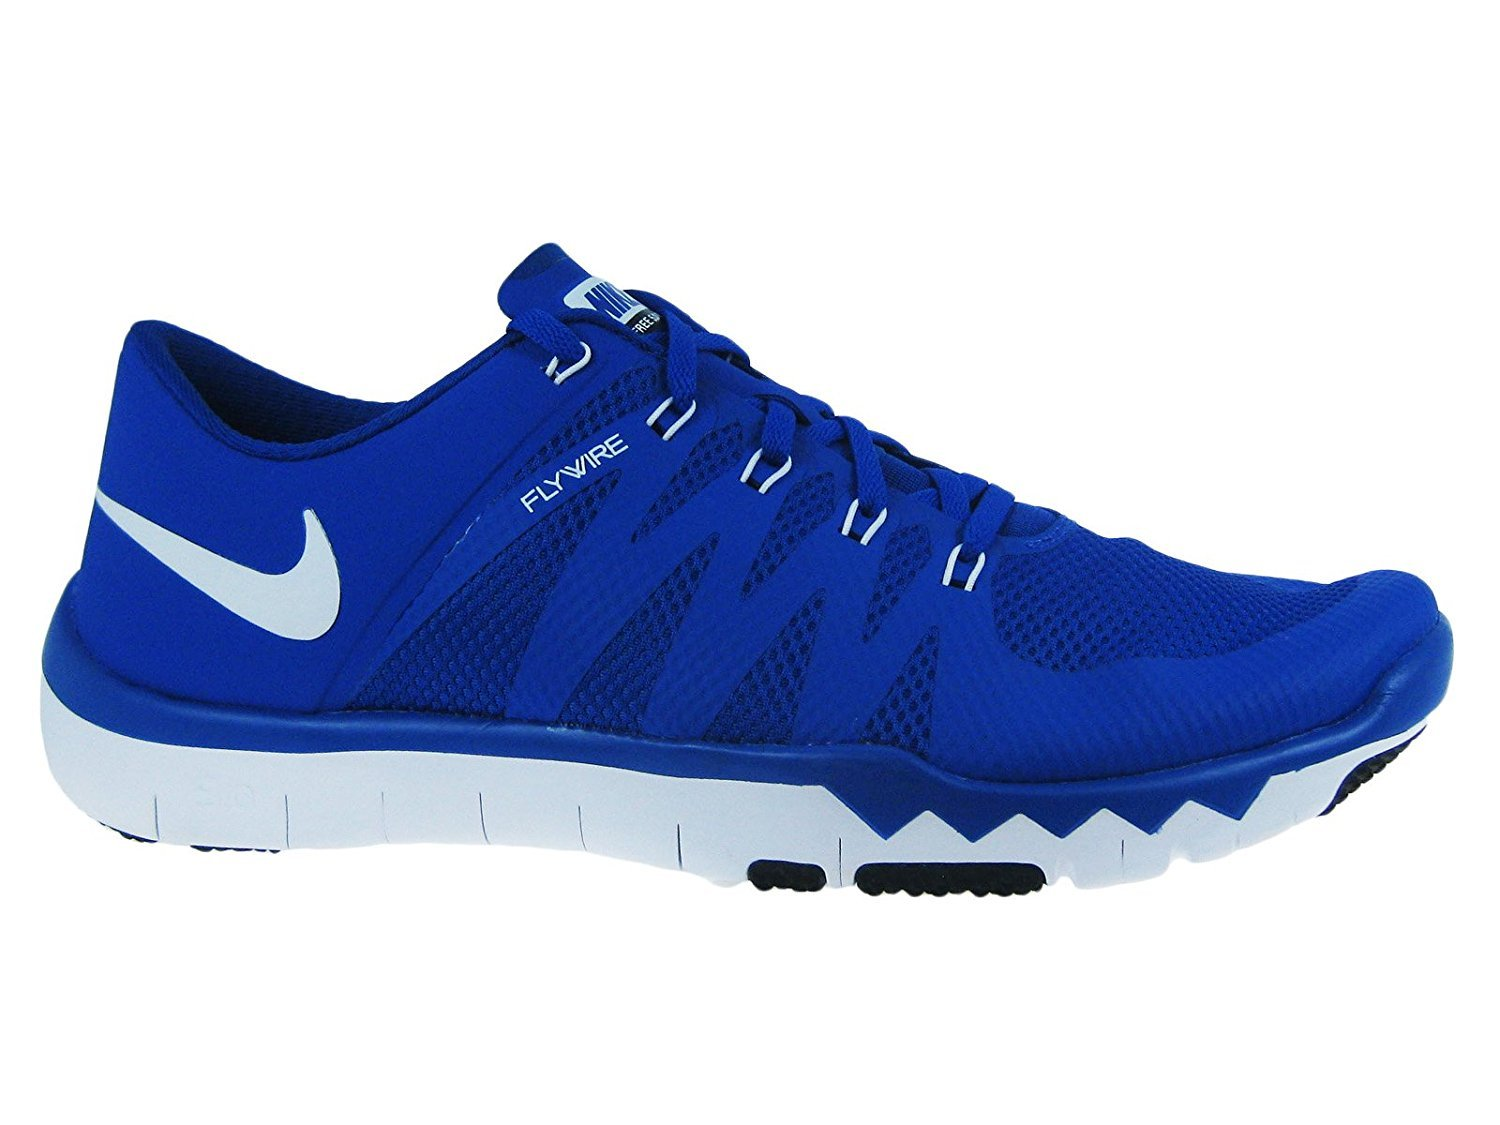 33c2d344f045c ... where can i buy nike 723987 free trainer 5.0 tb mens training shoes  game royal white